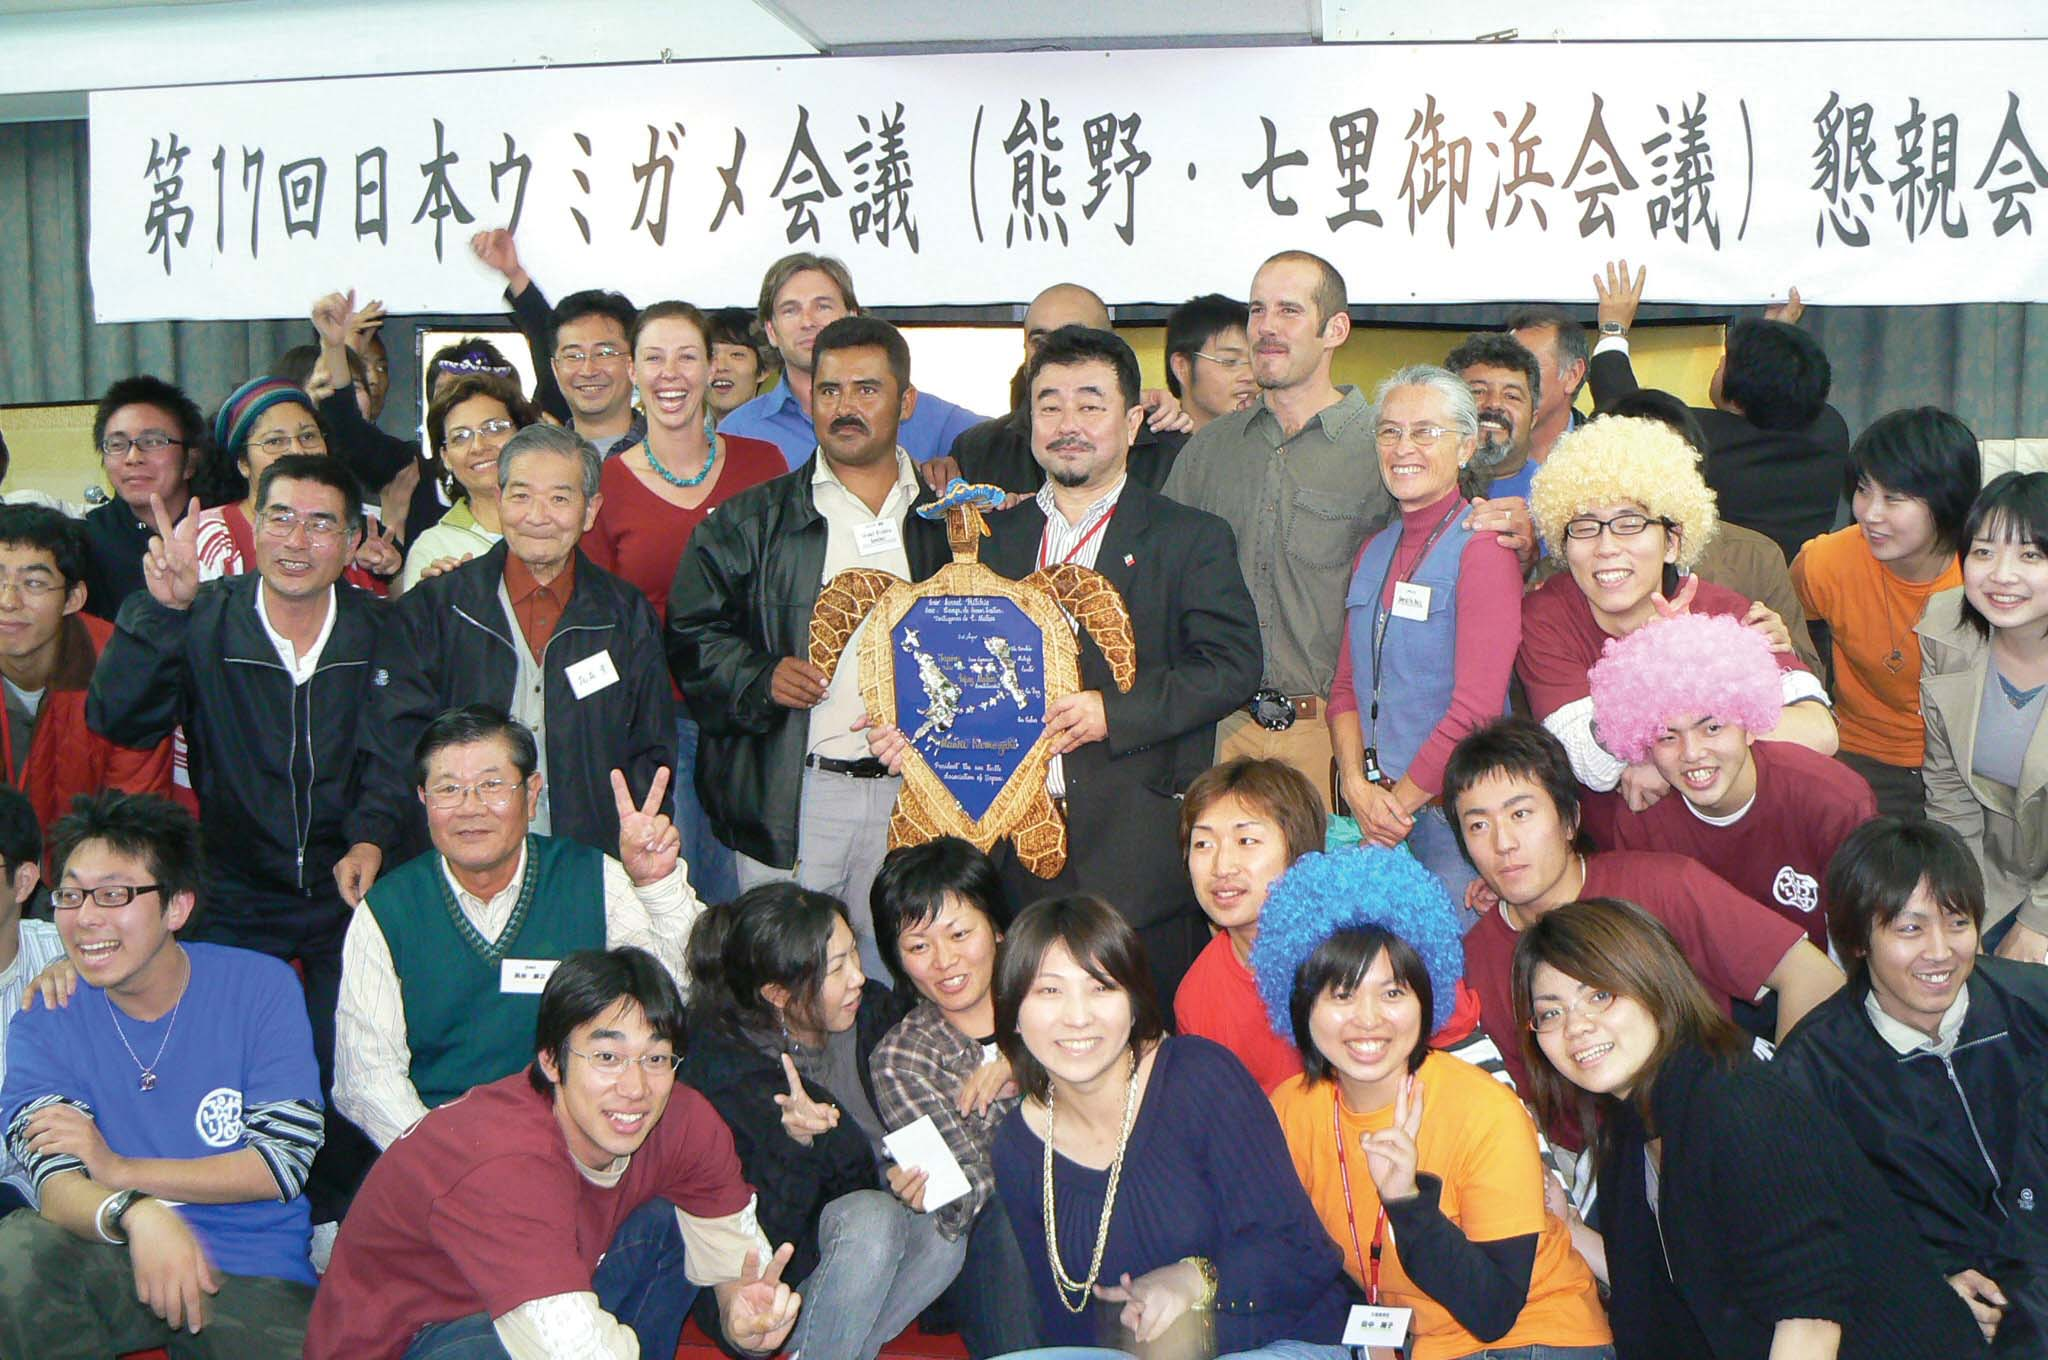 """Sign reads, """"17th Japan Sea Turtle Symposium Social Gathering."""" In Nov. 2006, fishermen, researchers, and resource managers from Mexico, Japan, and the United States gathered to commemorate the 10th anniversary of Adelita's track from Baja California Sur to Japan—the first loggerhead sea turtle to provide physical proof of their trans-Pacific migration via satellite telemetry. The objective of the trip was to share experiences, raise awareness and work toward reducing bycatch of loggerhead sea turtles during a twoweek journey throughout the Japan Archipelago. © PROPENINSULA / I. KINAN"""